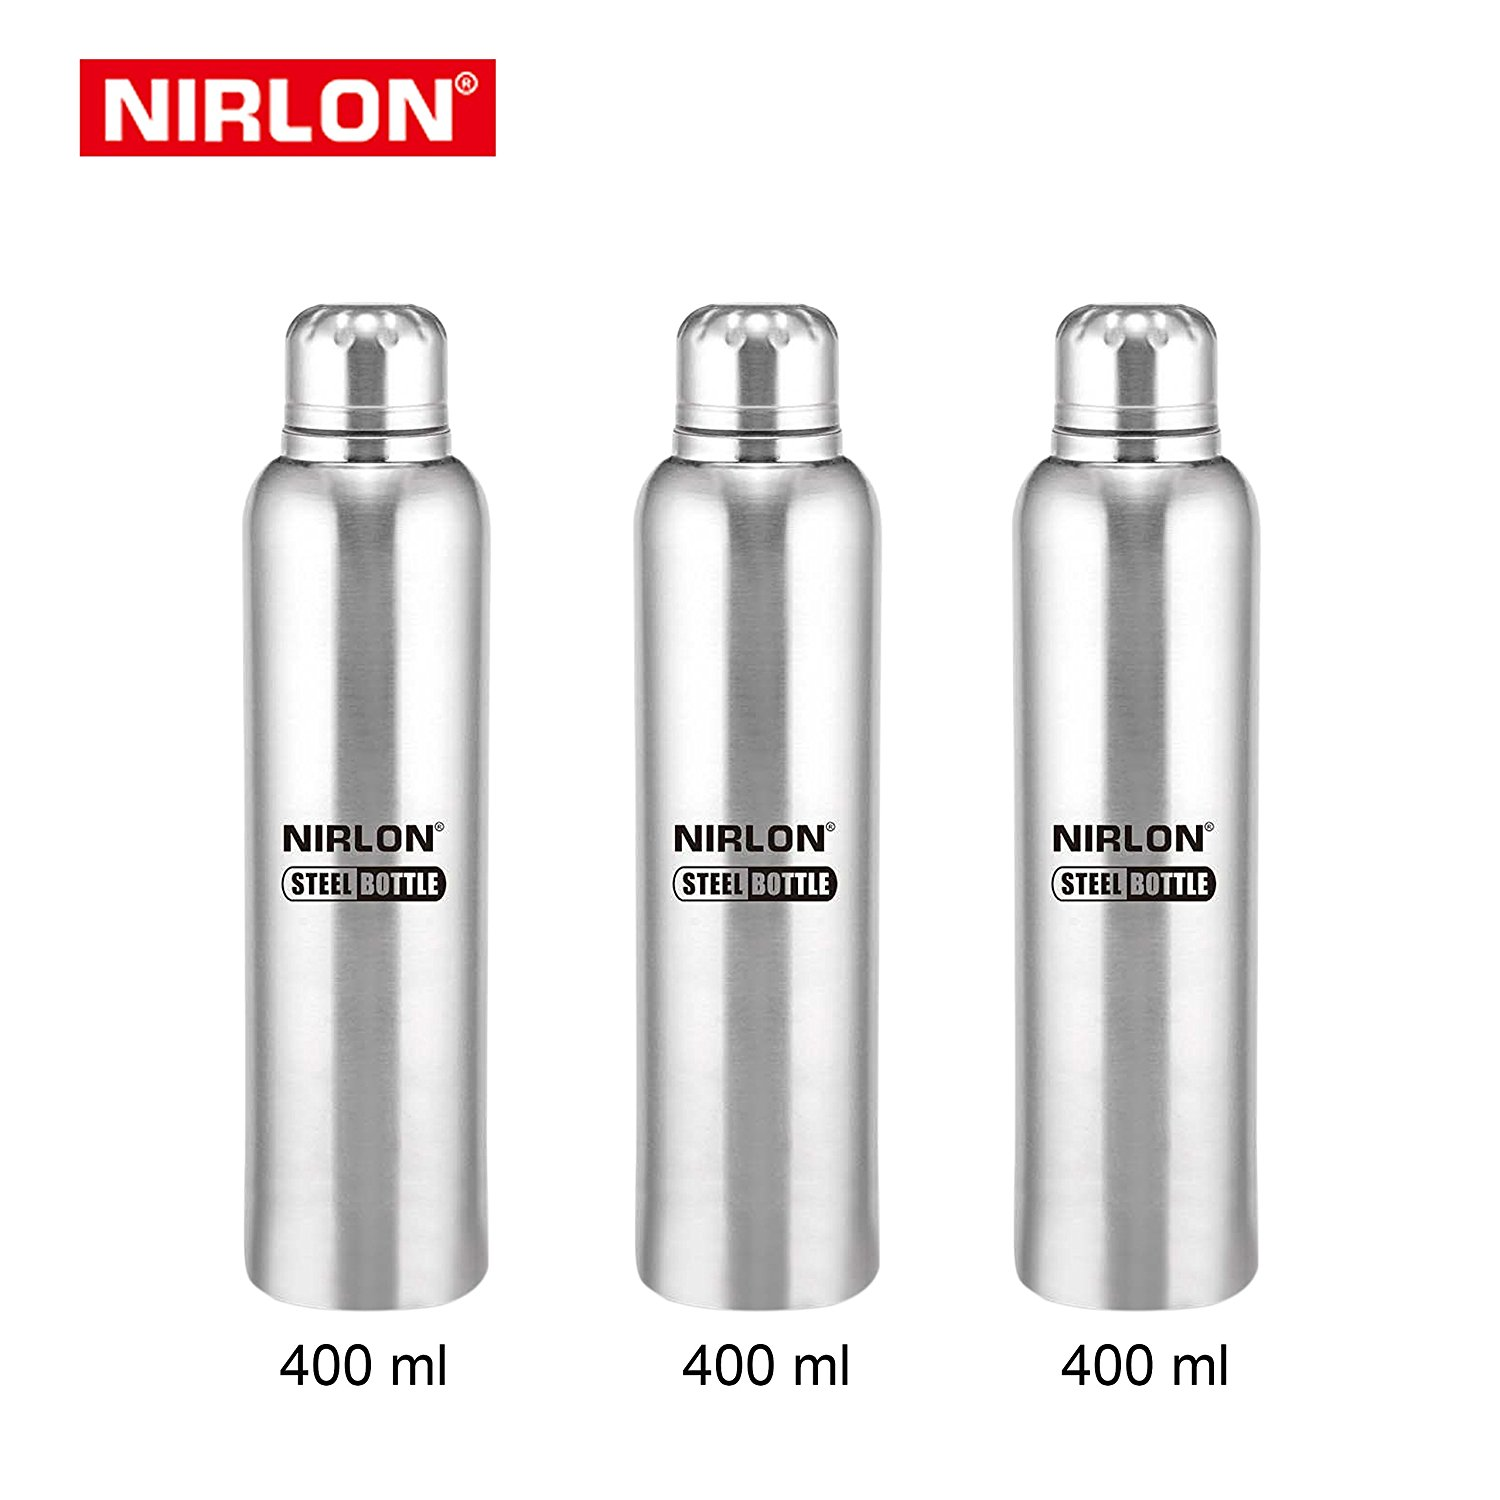 Nirlon Stainless Steel Bottle Set, Set of 3, Silver